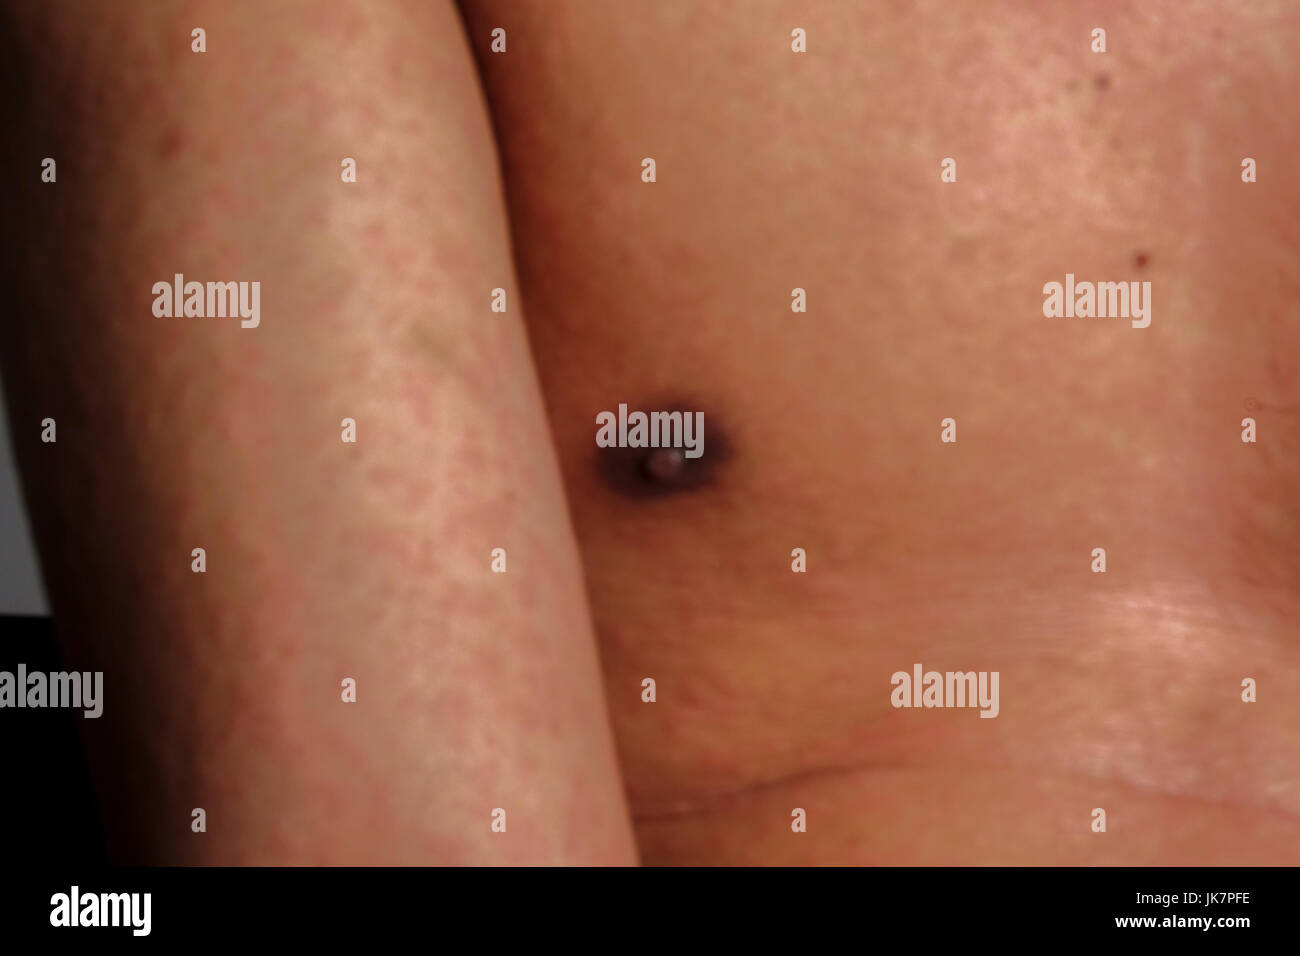 Man with dermatitis problem of rash ,Allergy rash - Stock Image